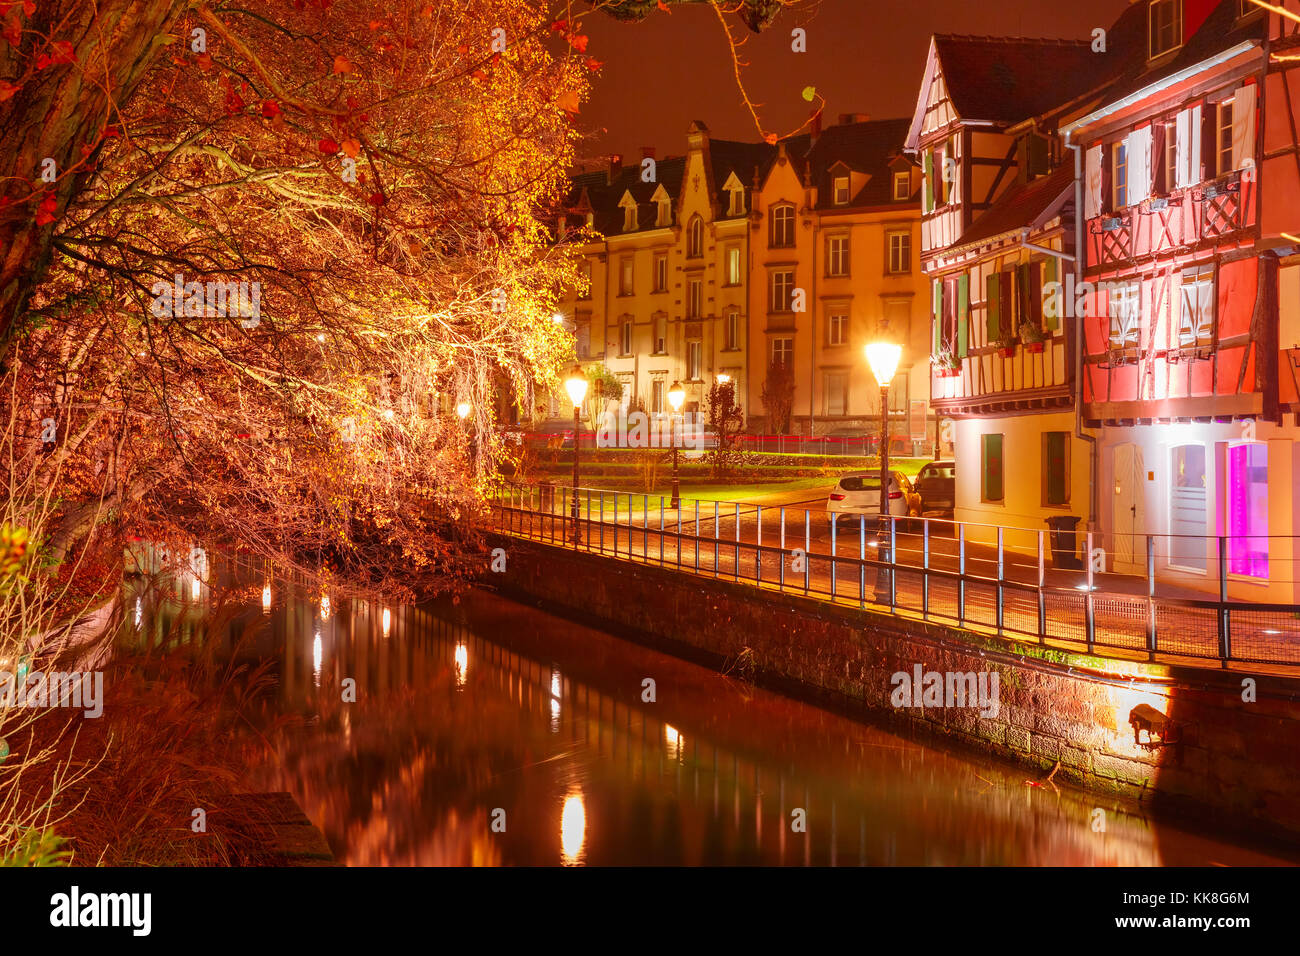 Christmas Little Venice in Colmar, Alsace, France - Stock Image